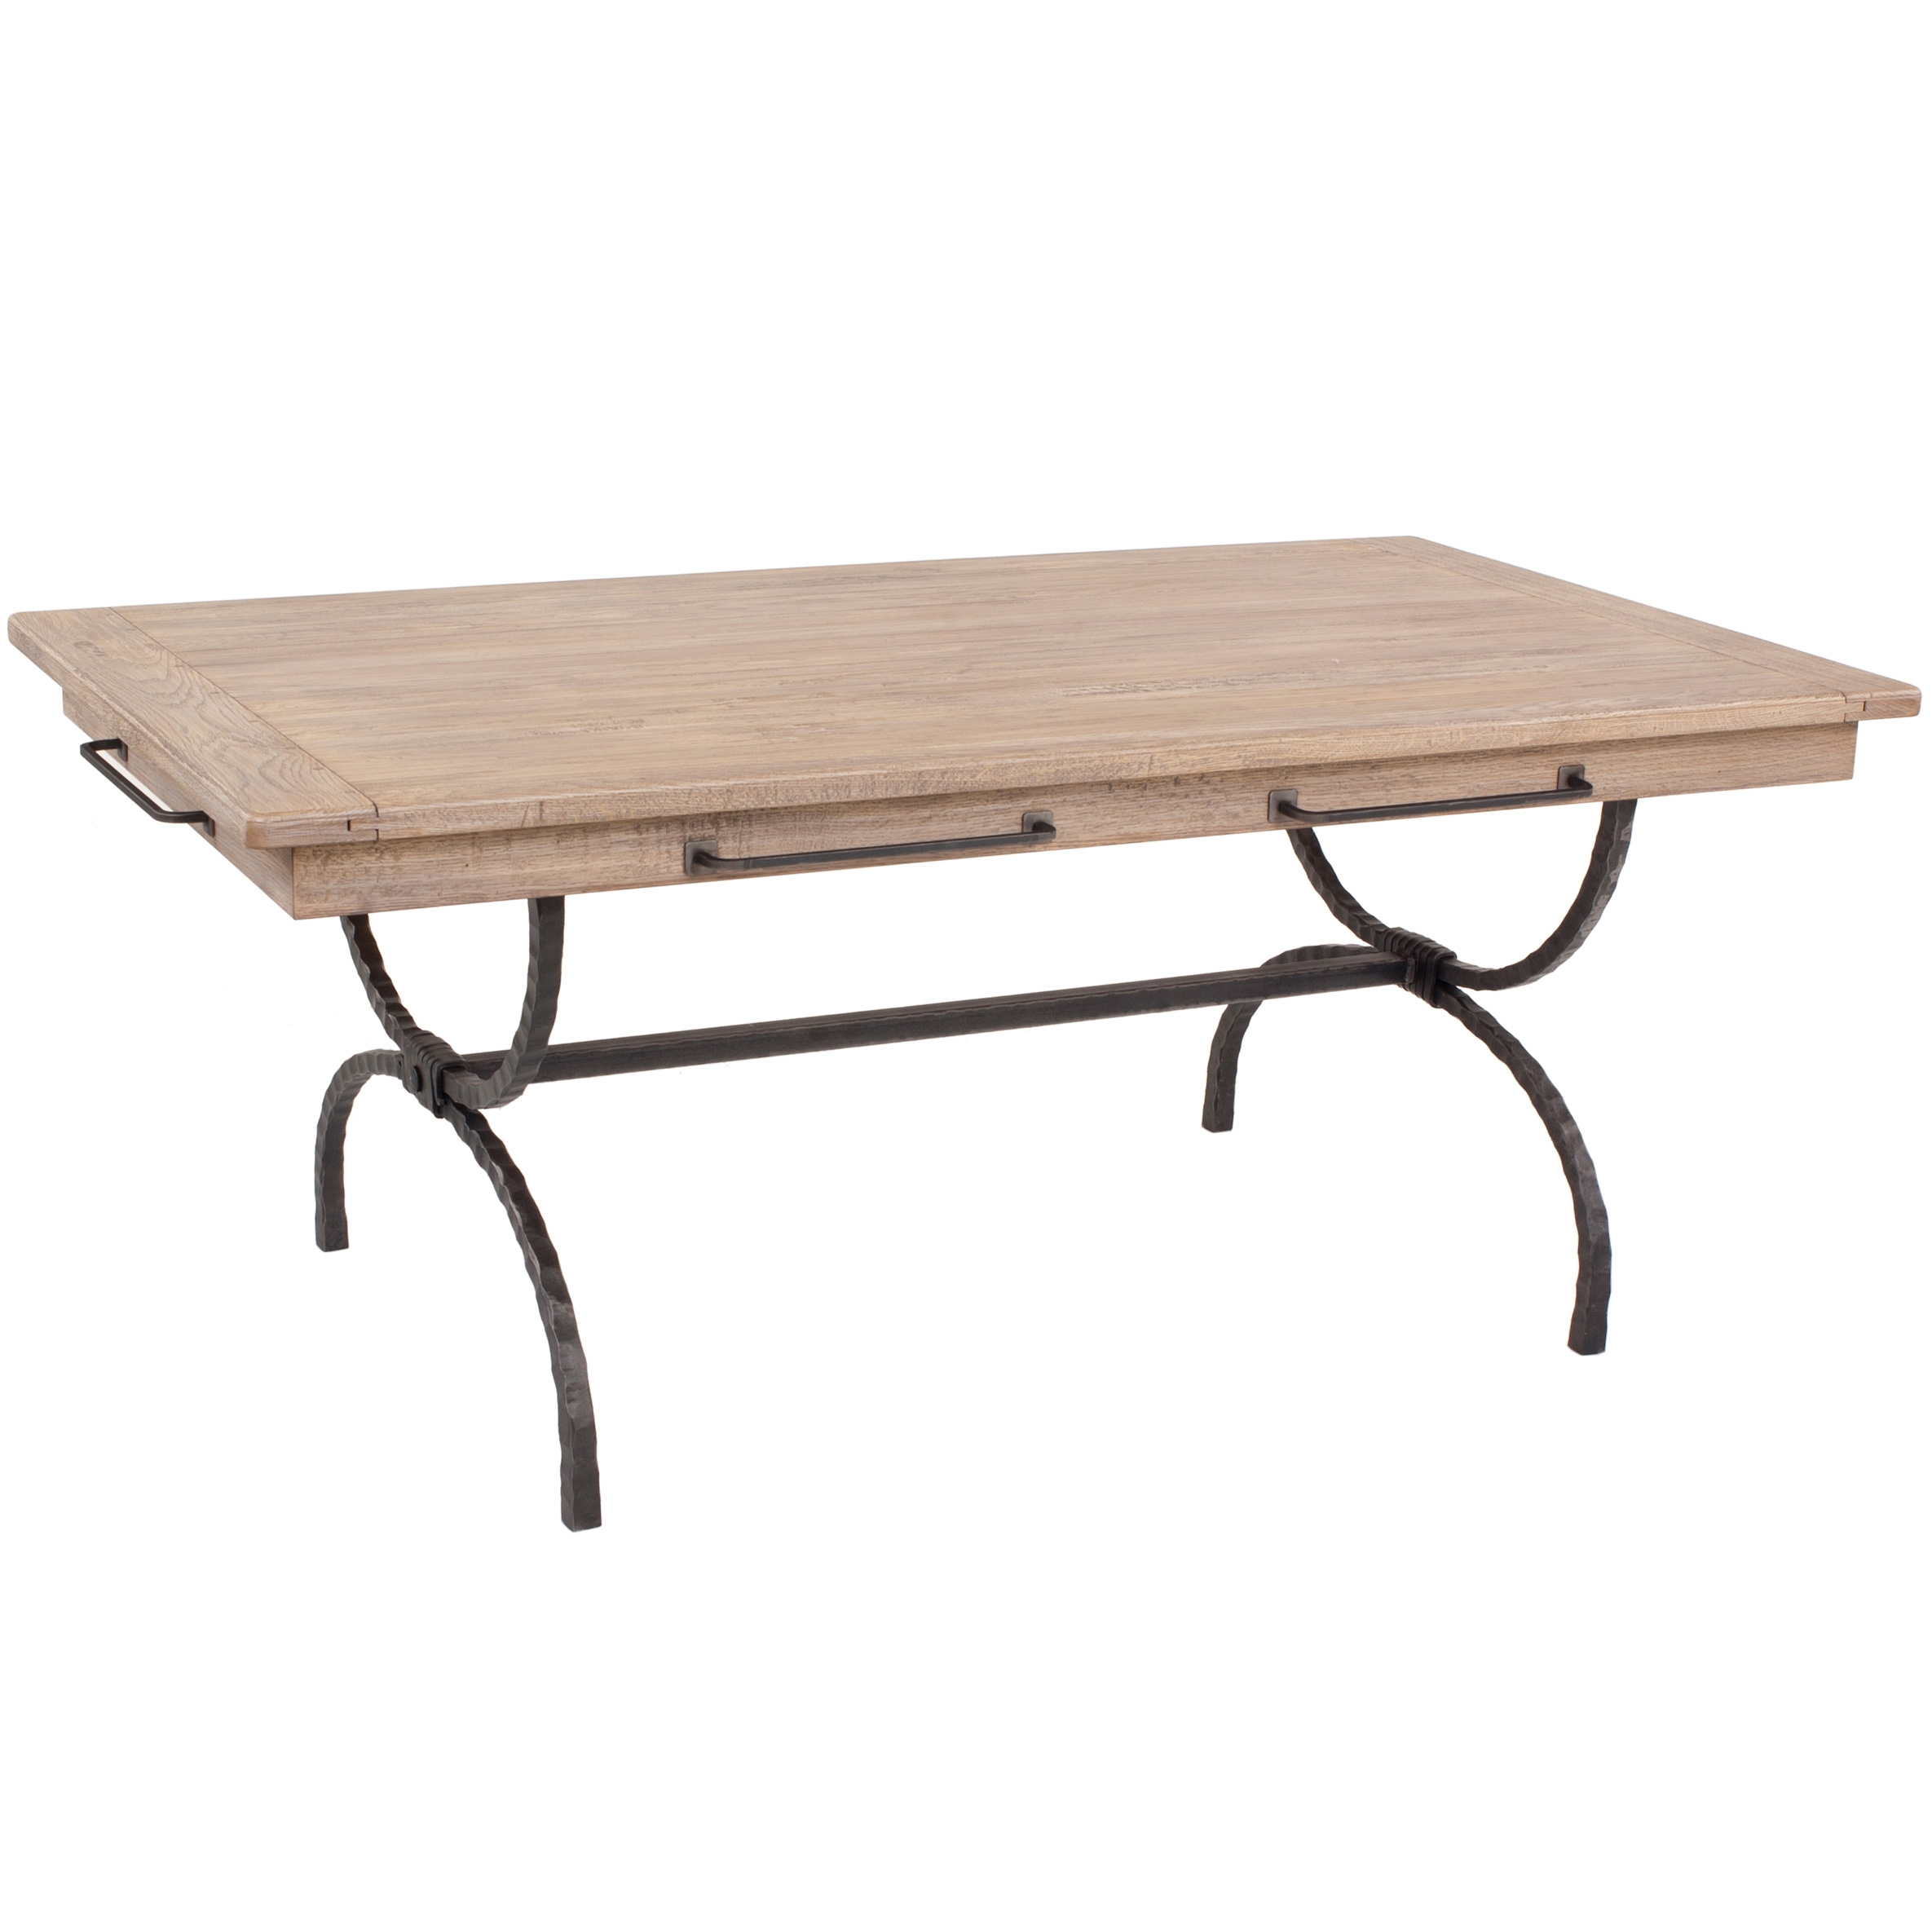 Wrought Iron Legacy Rectangular Dining Table with Napkin Bars ...